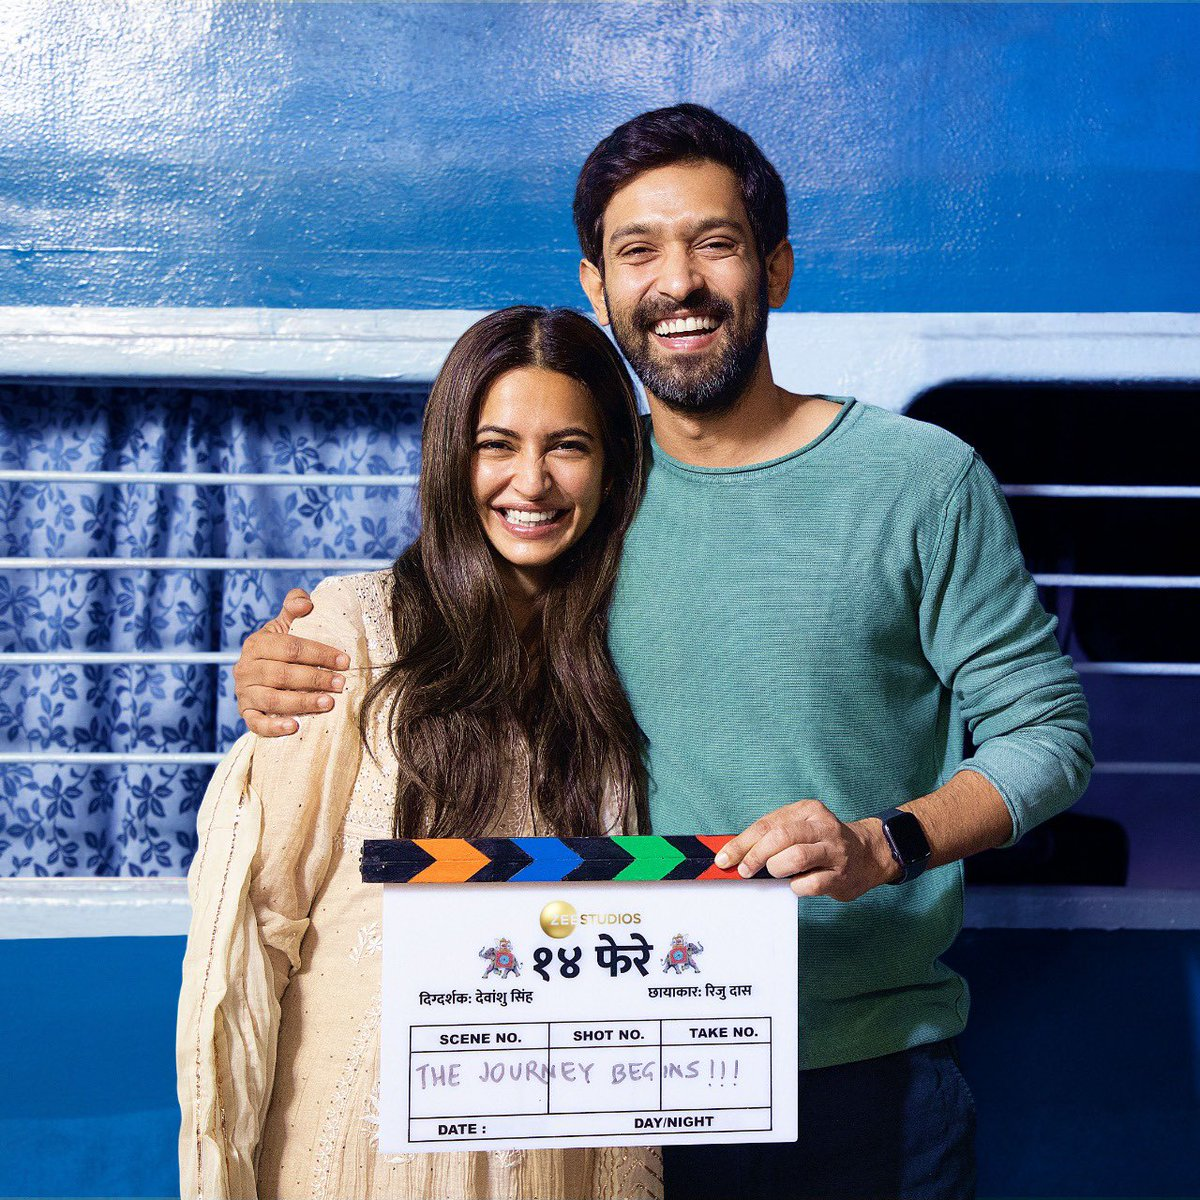 Embarking on a journey that promises 2x fun, dulha-dulhan are ready to take #14Phere! 🤩 ❤️ Starring Vikrant Massey, Kriti Kharbanda, and directed by Devanshu Singh. A Zee Studios production #ShootBegins today! 🎥 #BackInAction  🎬